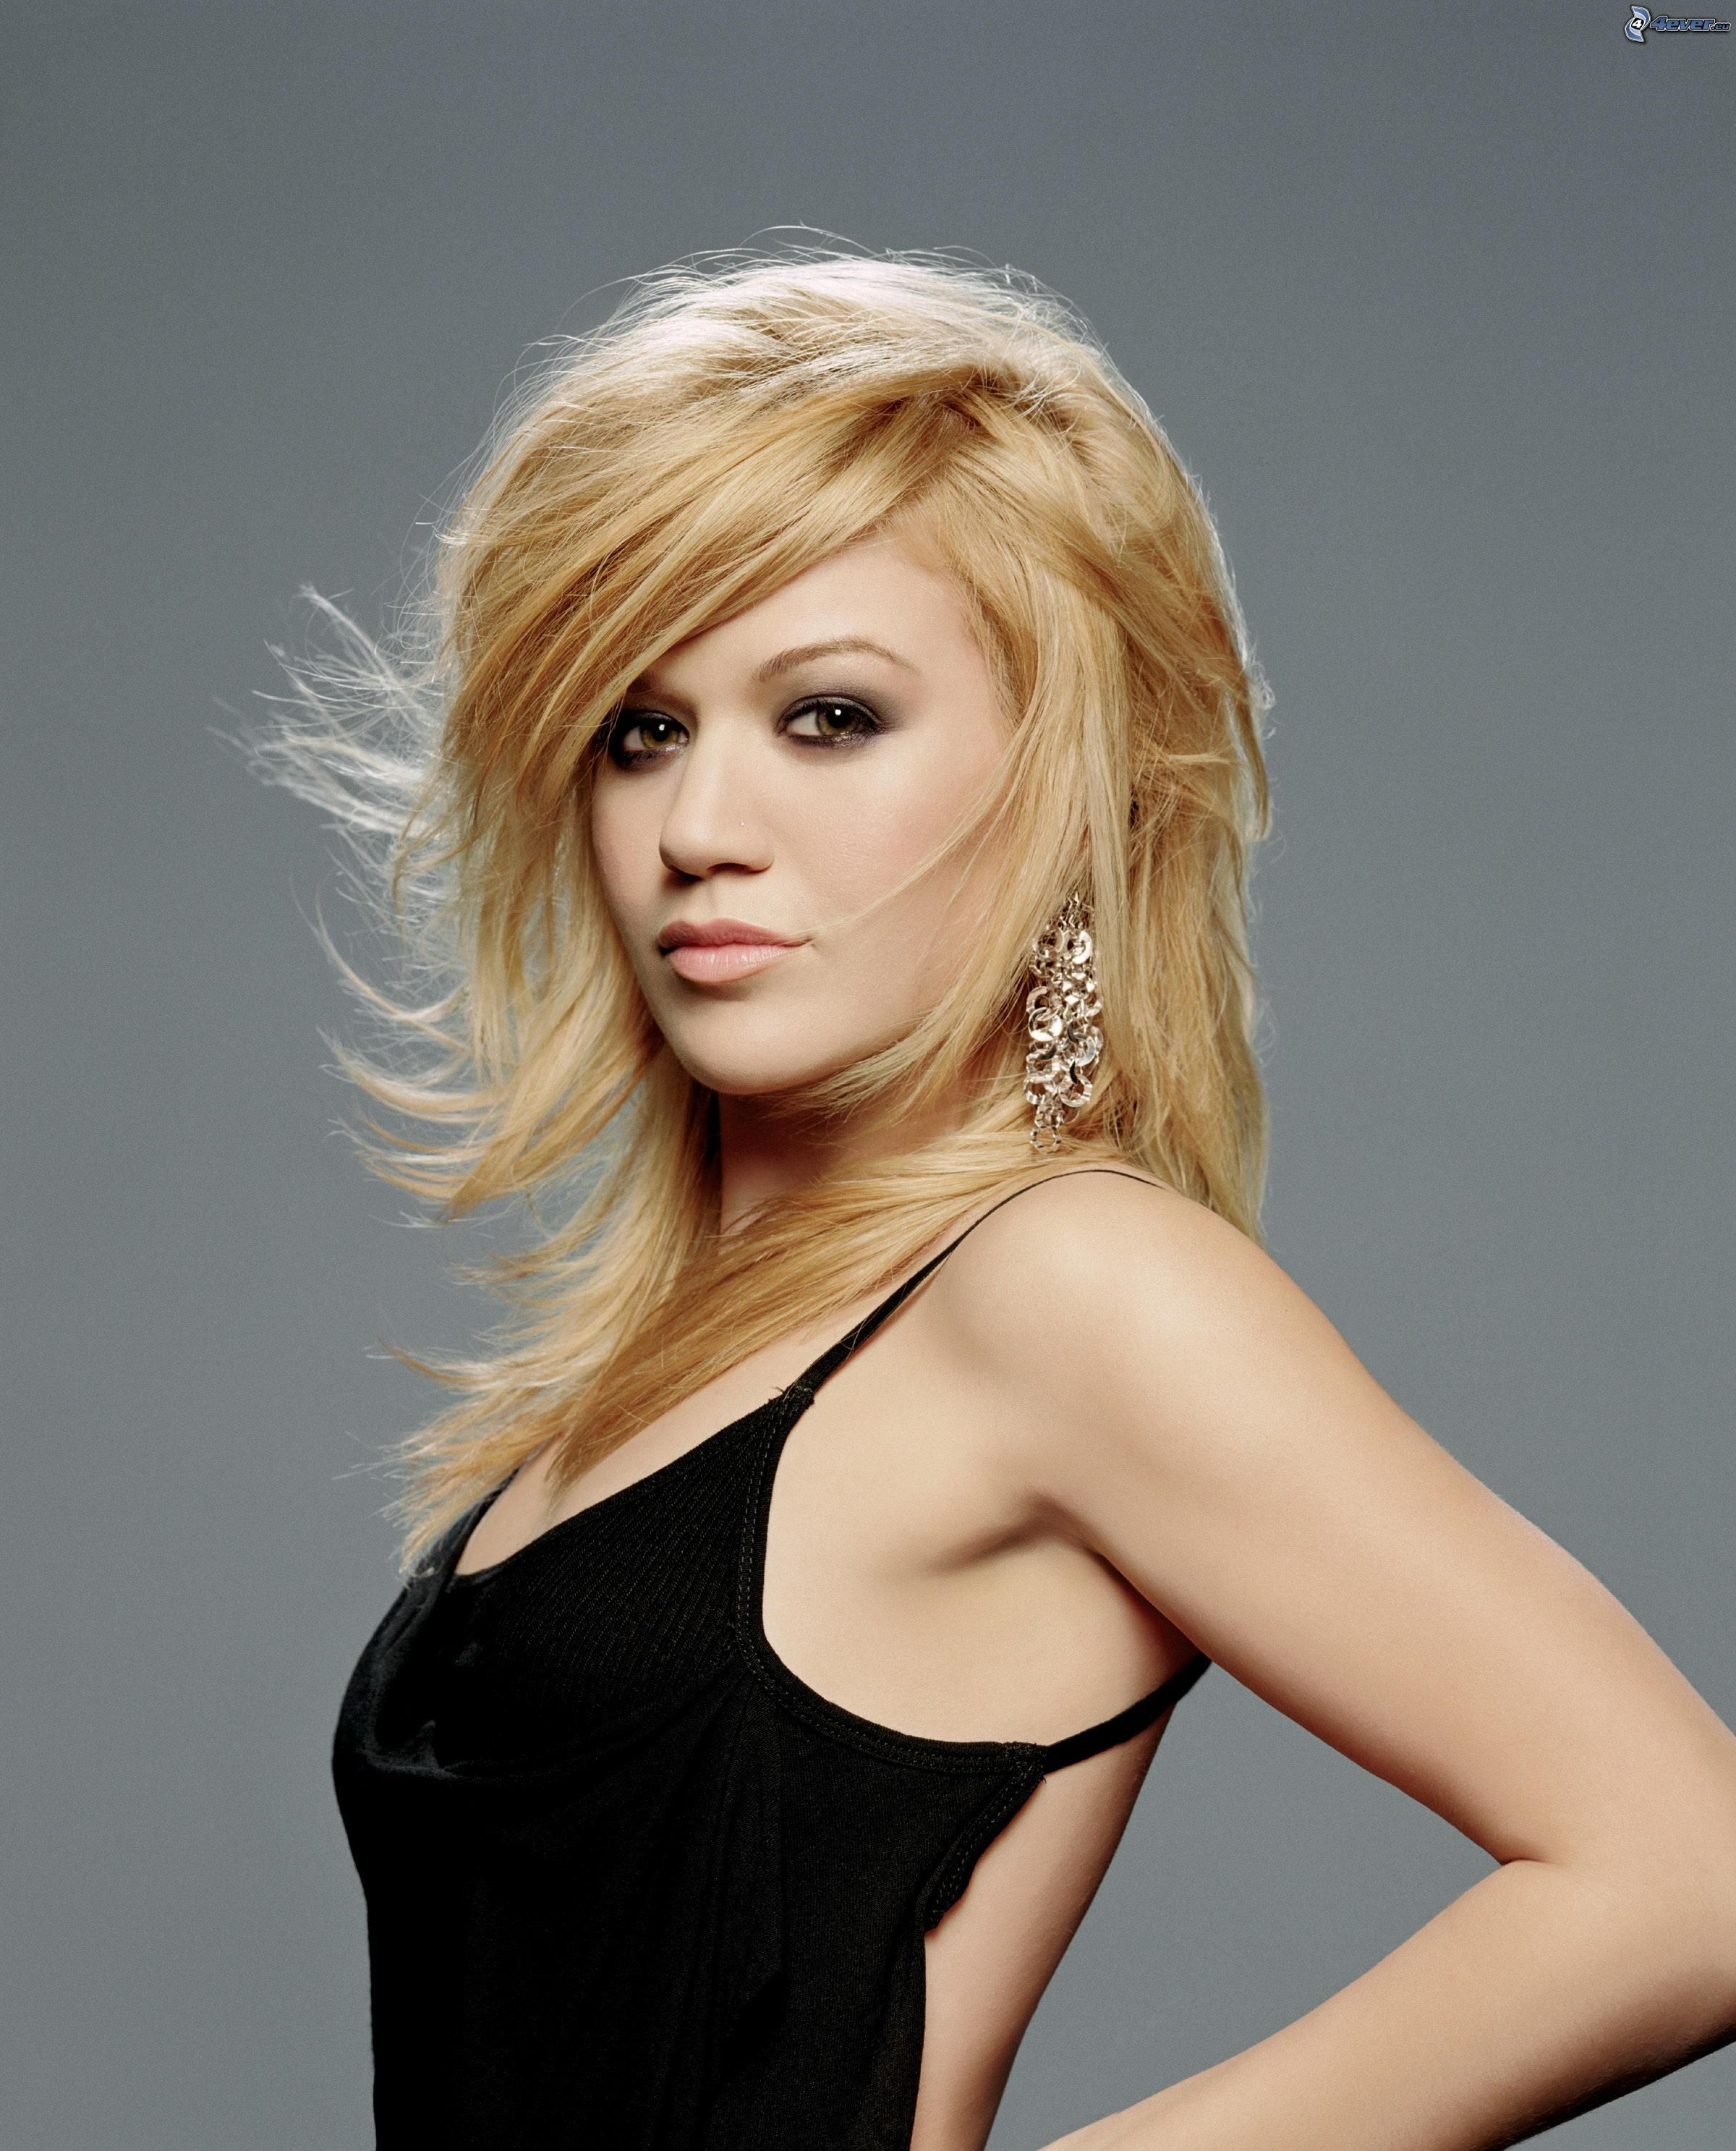 Kelly clarkson weight gain and loss kelly clarkson and wiki